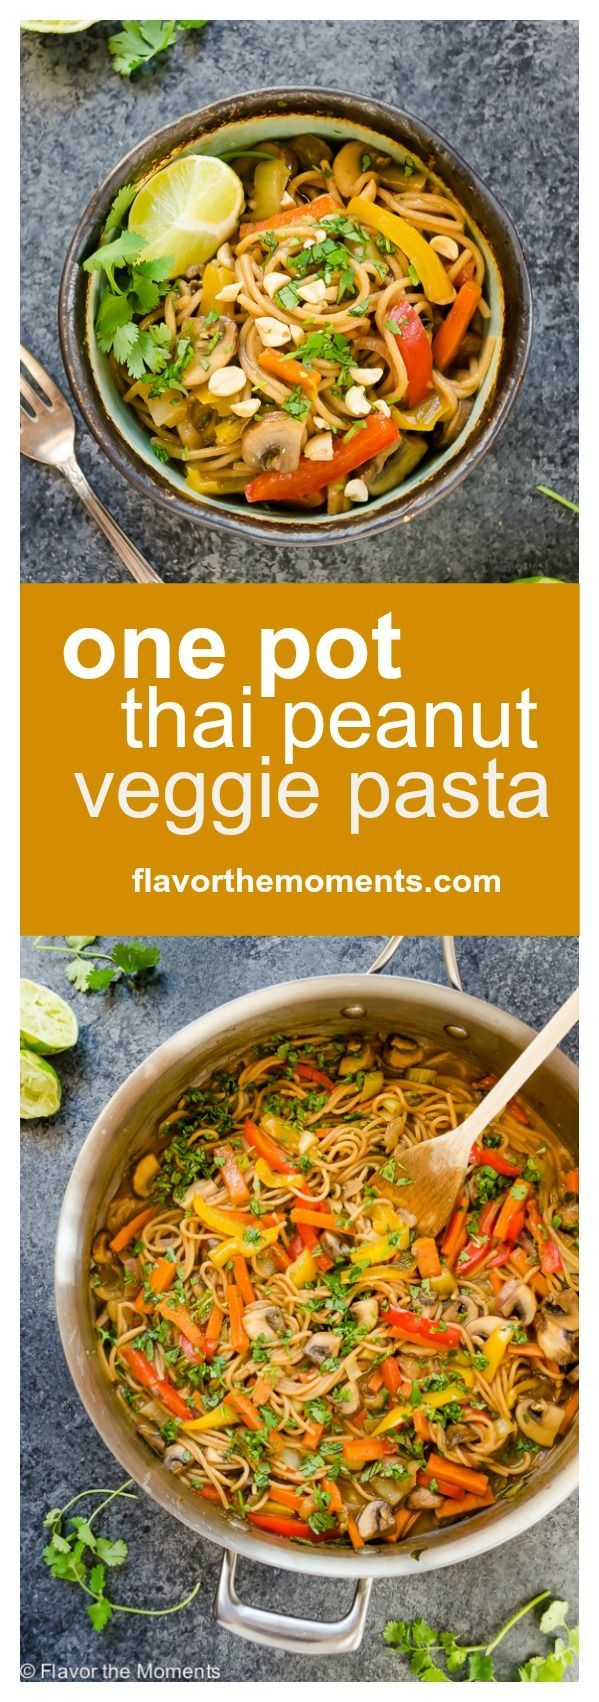 One Pot Thai Peanut Veggie Pasta is whole wheat spaghetti and plenty of veggies in a flavorful Thai peanut sauce. It's a delicious meatless meal…